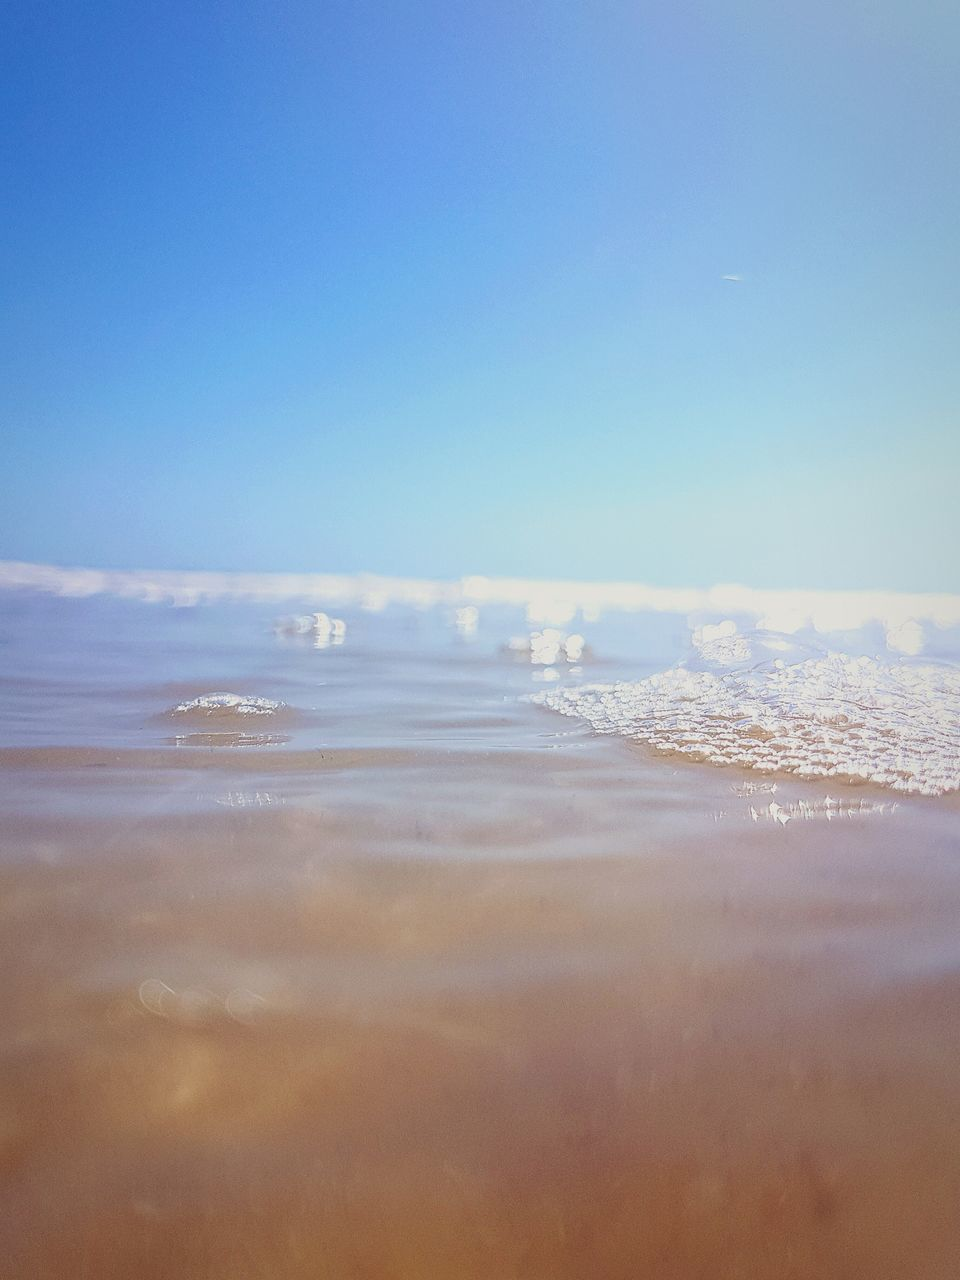 sea, nature, beauty in nature, water, scenics, tranquility, no people, wave, tranquil scene, outdoors, sky, blue, beach, day, horizon over water, clear sky, close-up